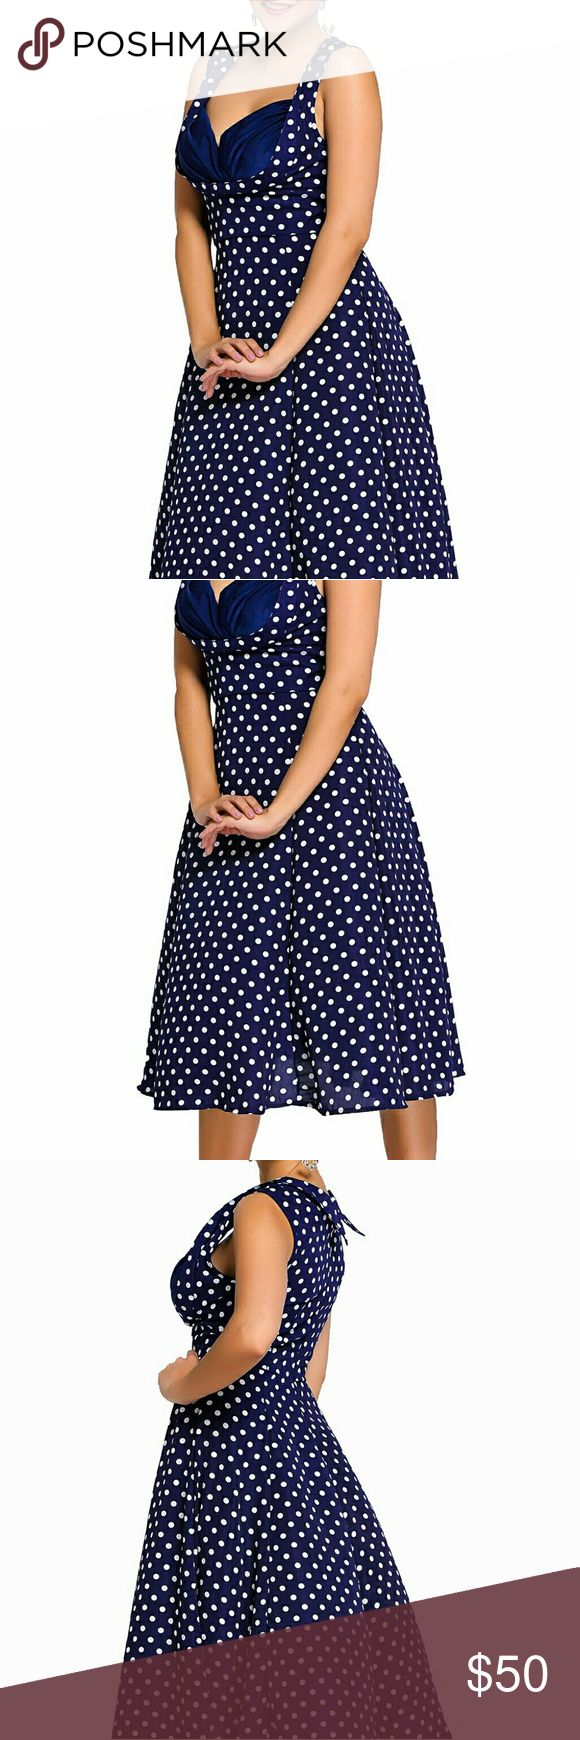 Retro Polka Dot Dress This elegant Vintage dress shows fellow dance hall attendees you've got style. With it's chic sweetheart neck, carefully...